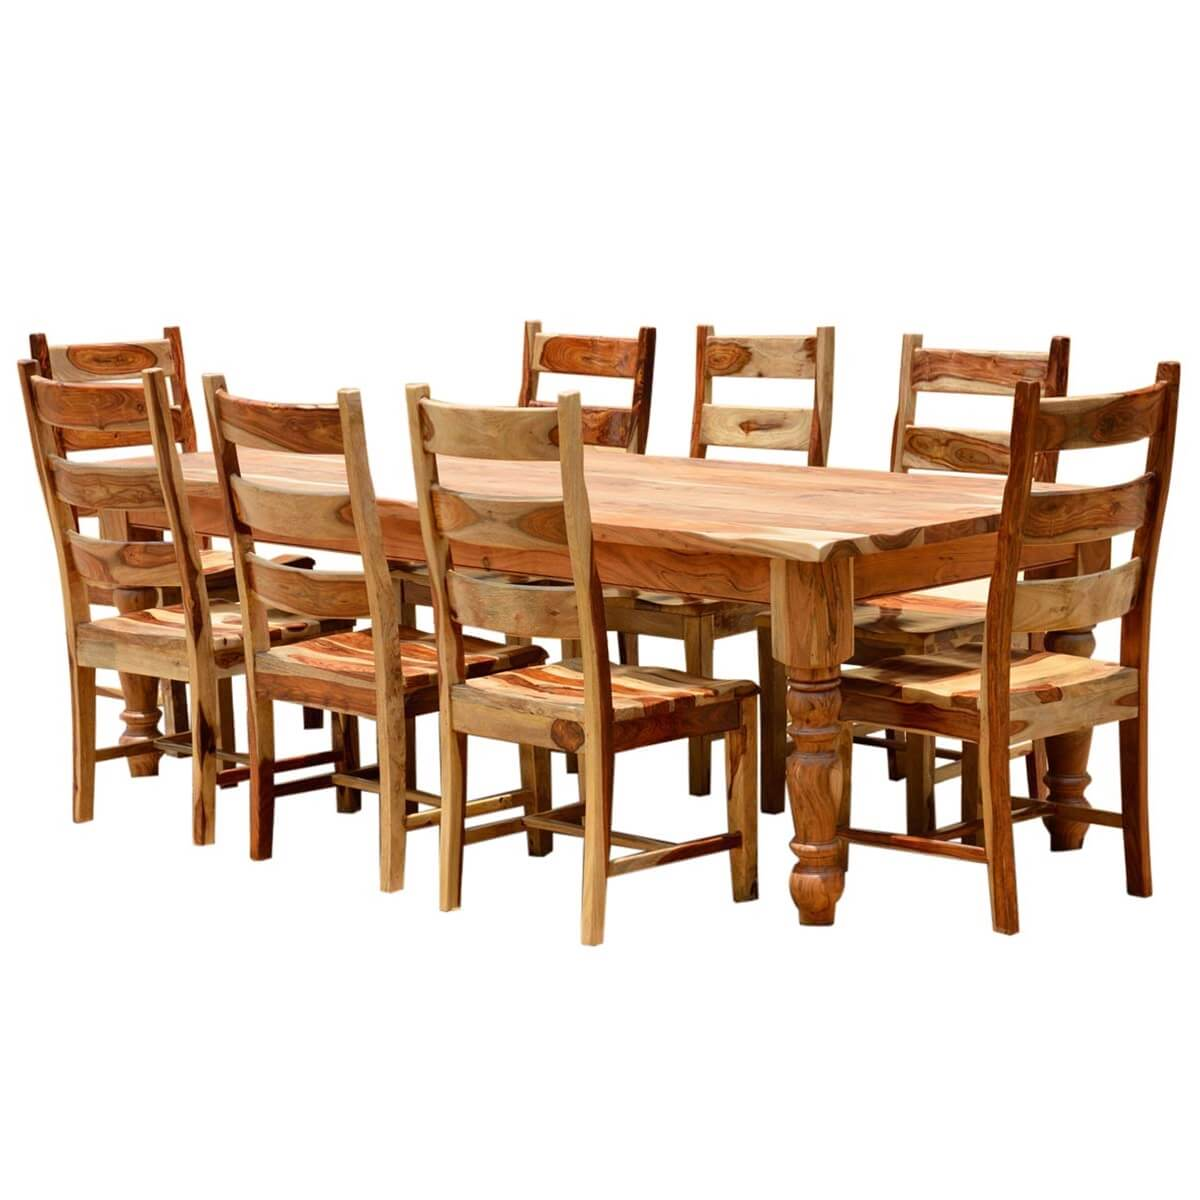 Unfinished Dining Room Chairs Rustic Solid Wood Farmhouse Dining Room Table Chair Set